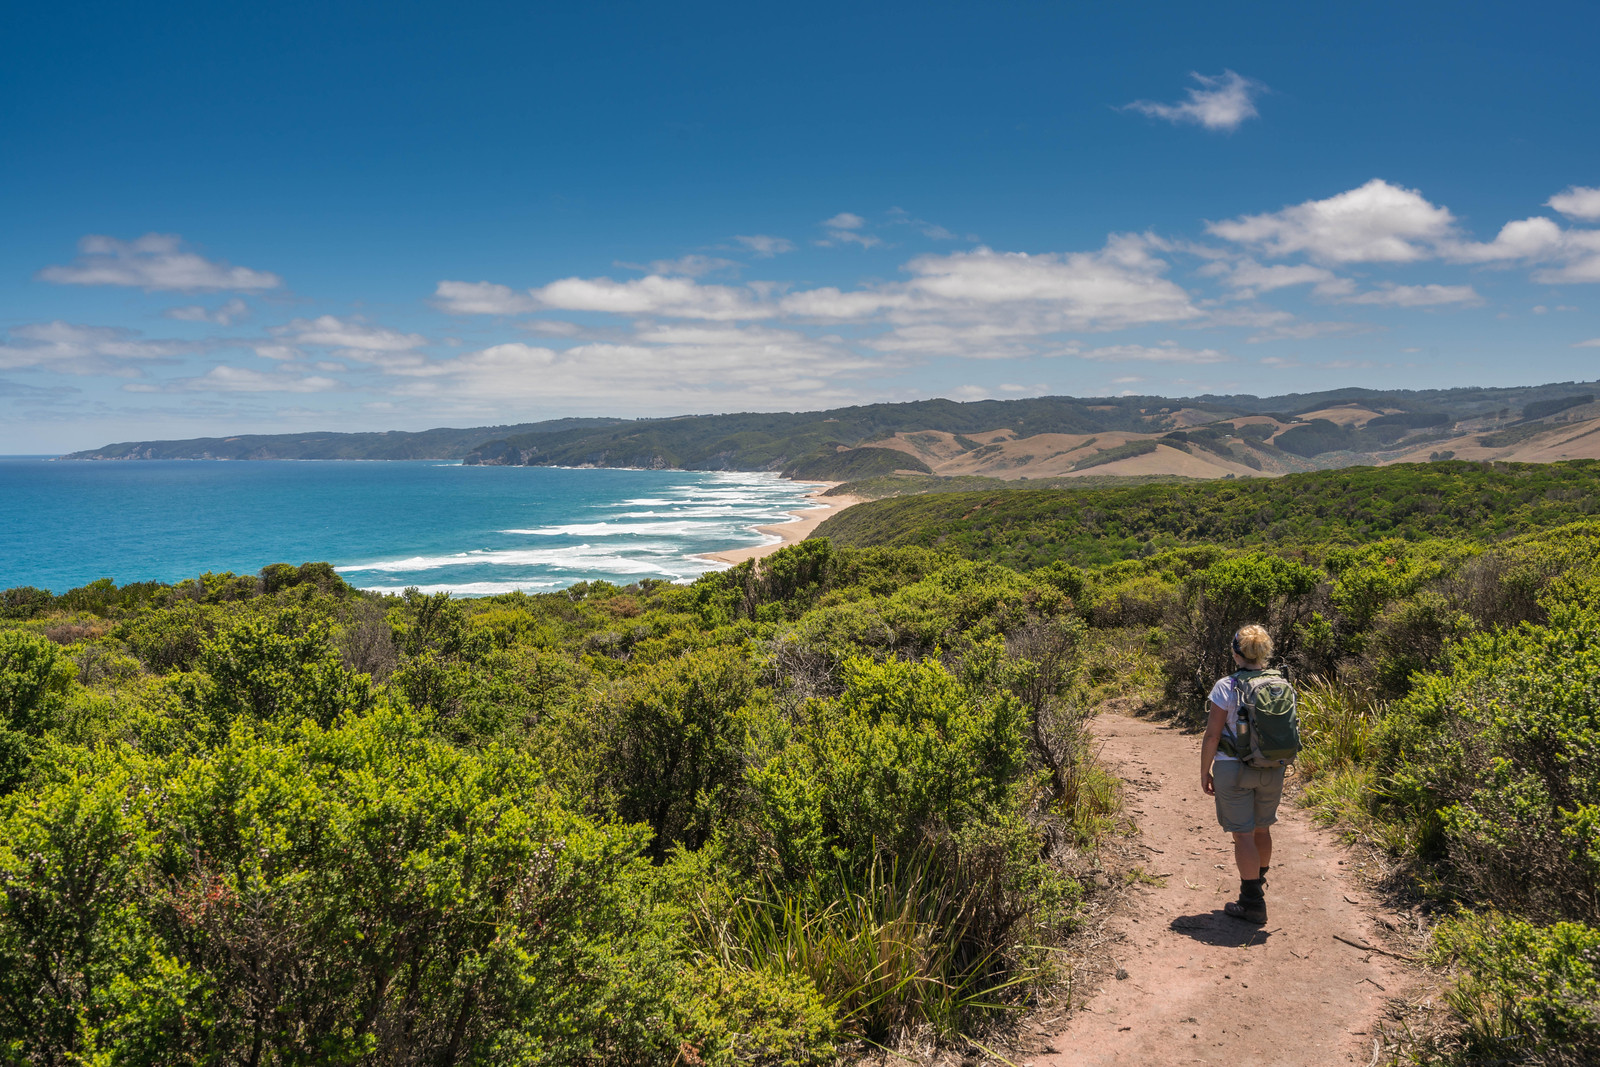 Views on Day 1 of the Great Ocean Walk.